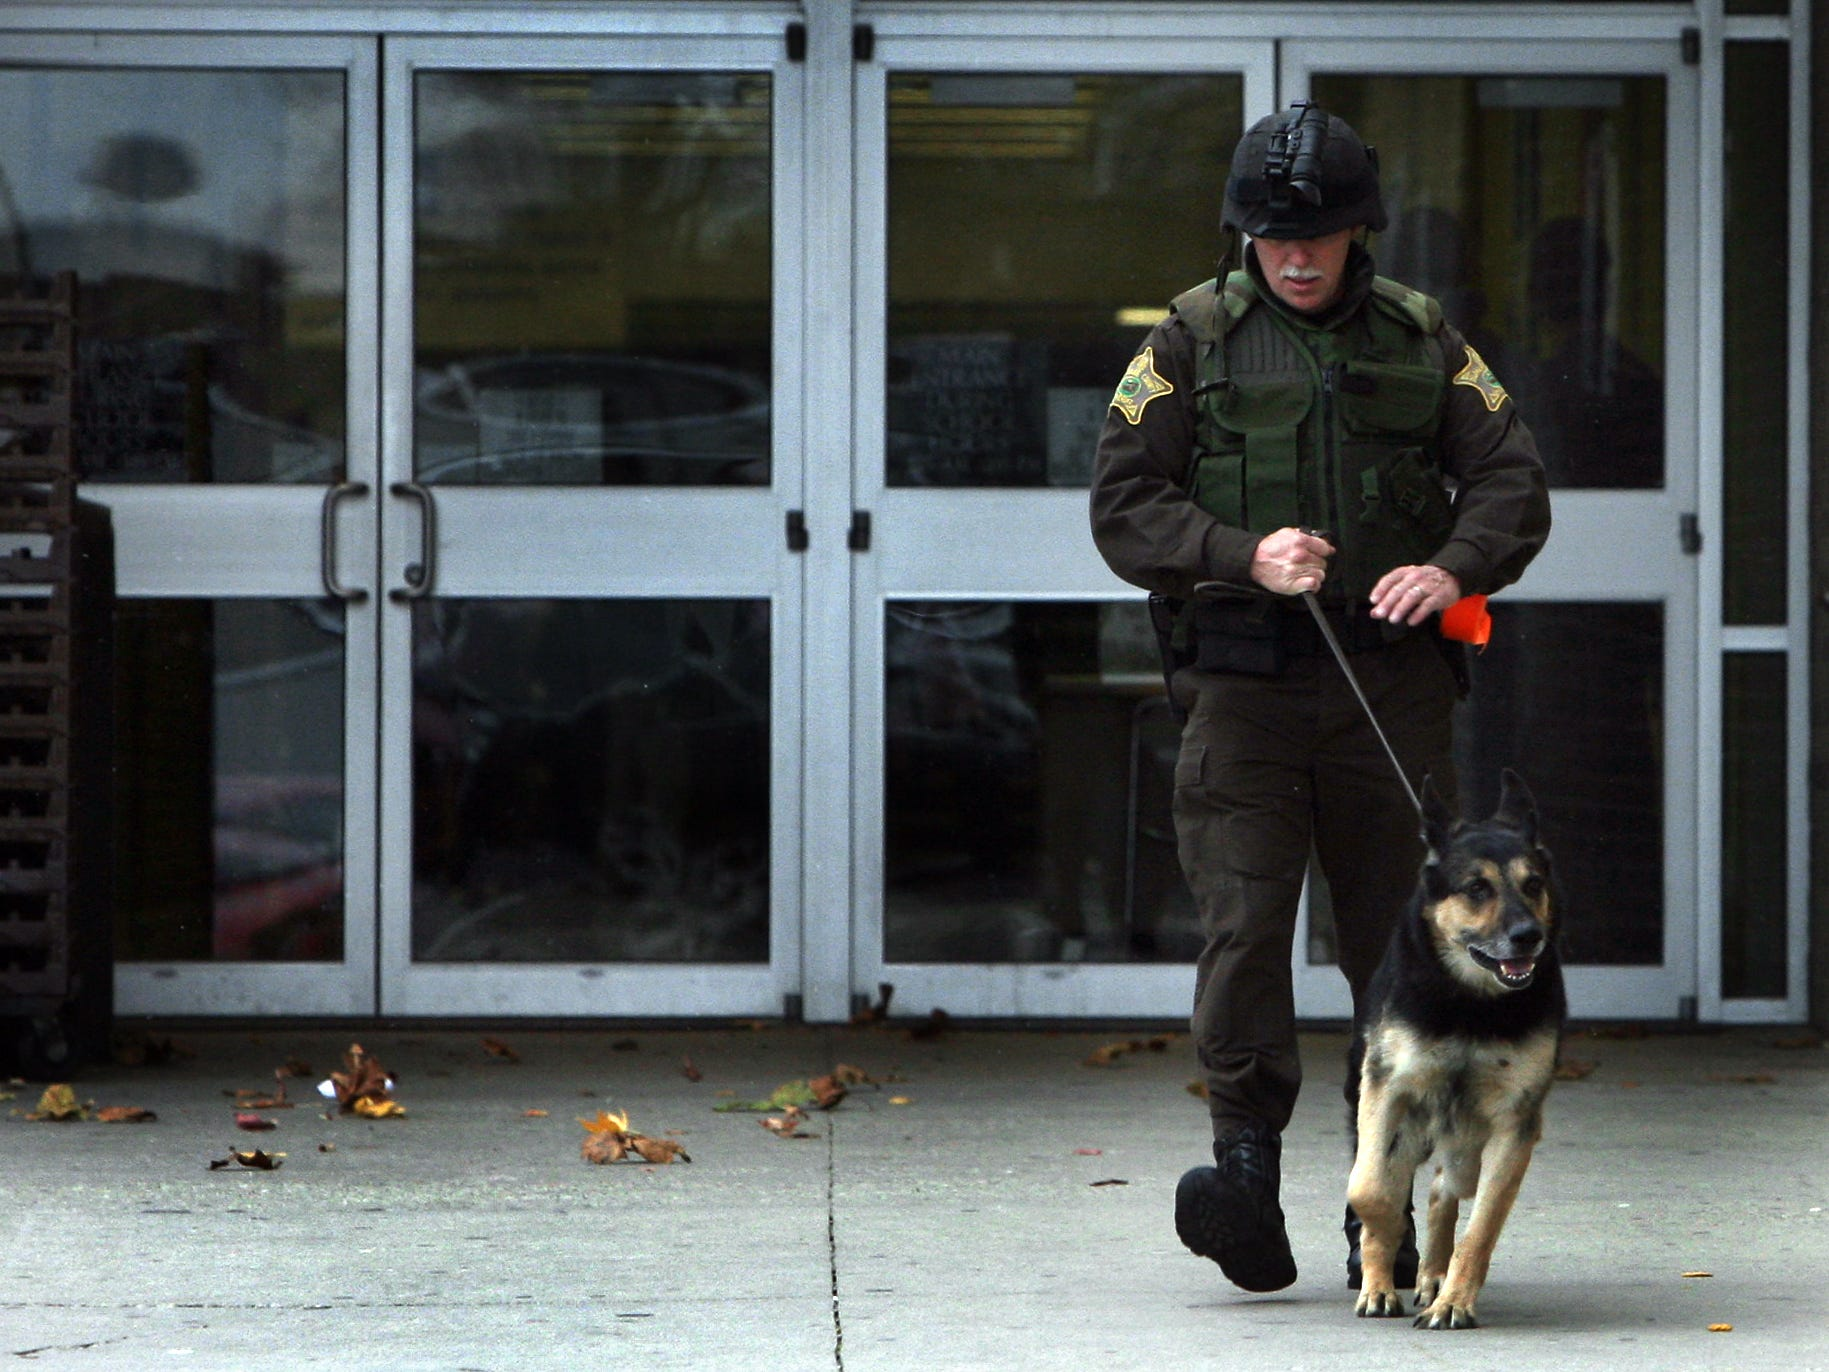 FROM 2007: Delaware County Sheriff George Sheridan leaves Northside Middle School with his K-9 partner, Heri, after searching the building following a bomb threat.